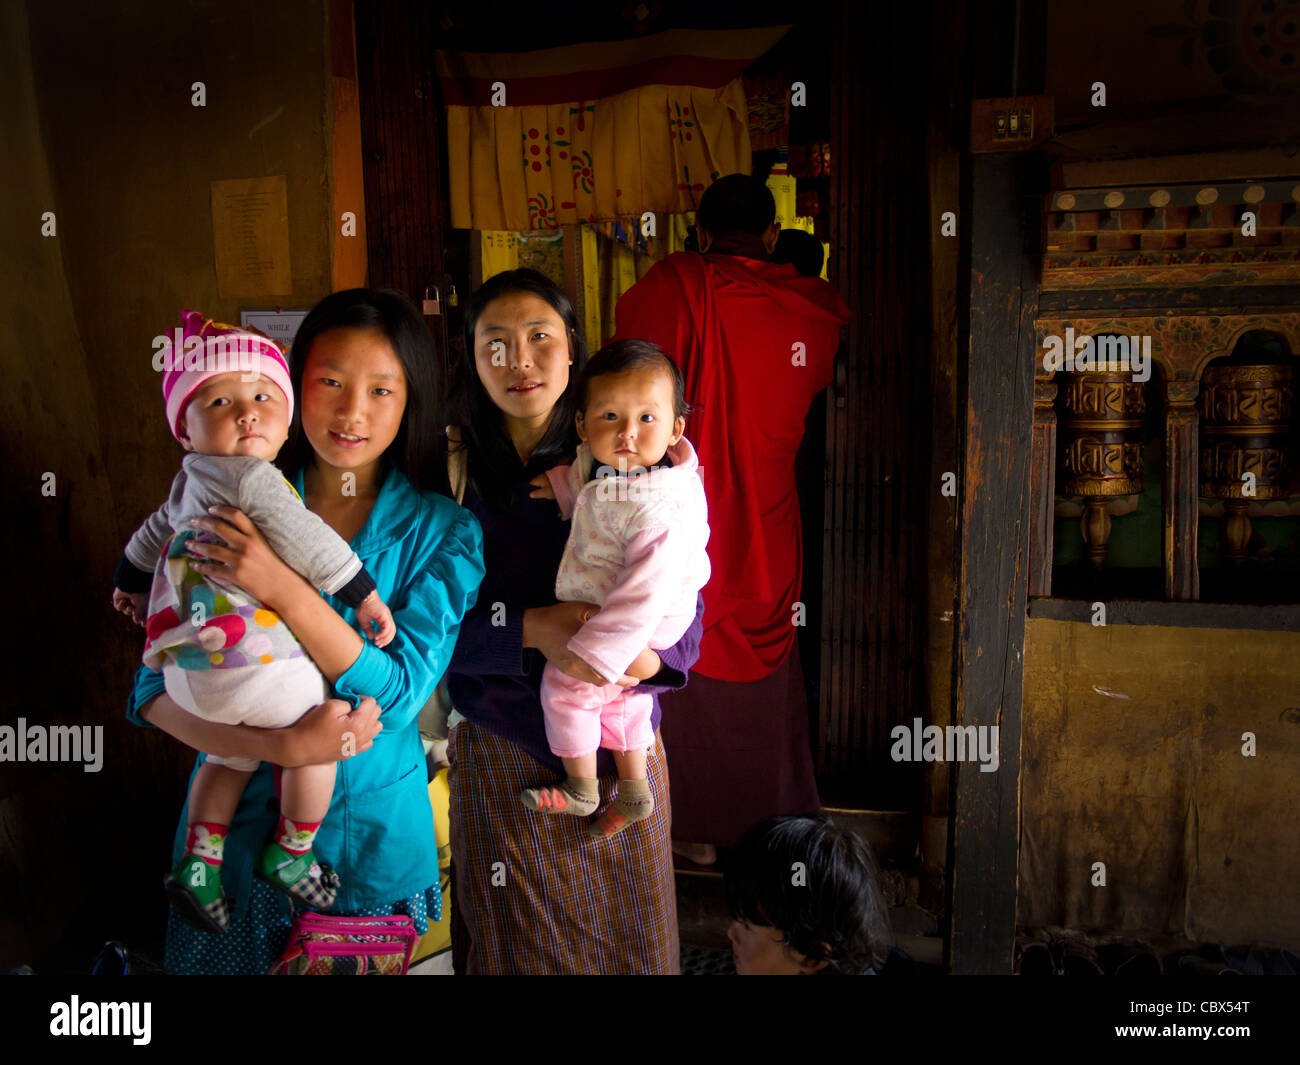 Asia, Bhutan, Changangkha Lhakhang, child, children, mother, son, Thimpu, woman, women - Stock Image